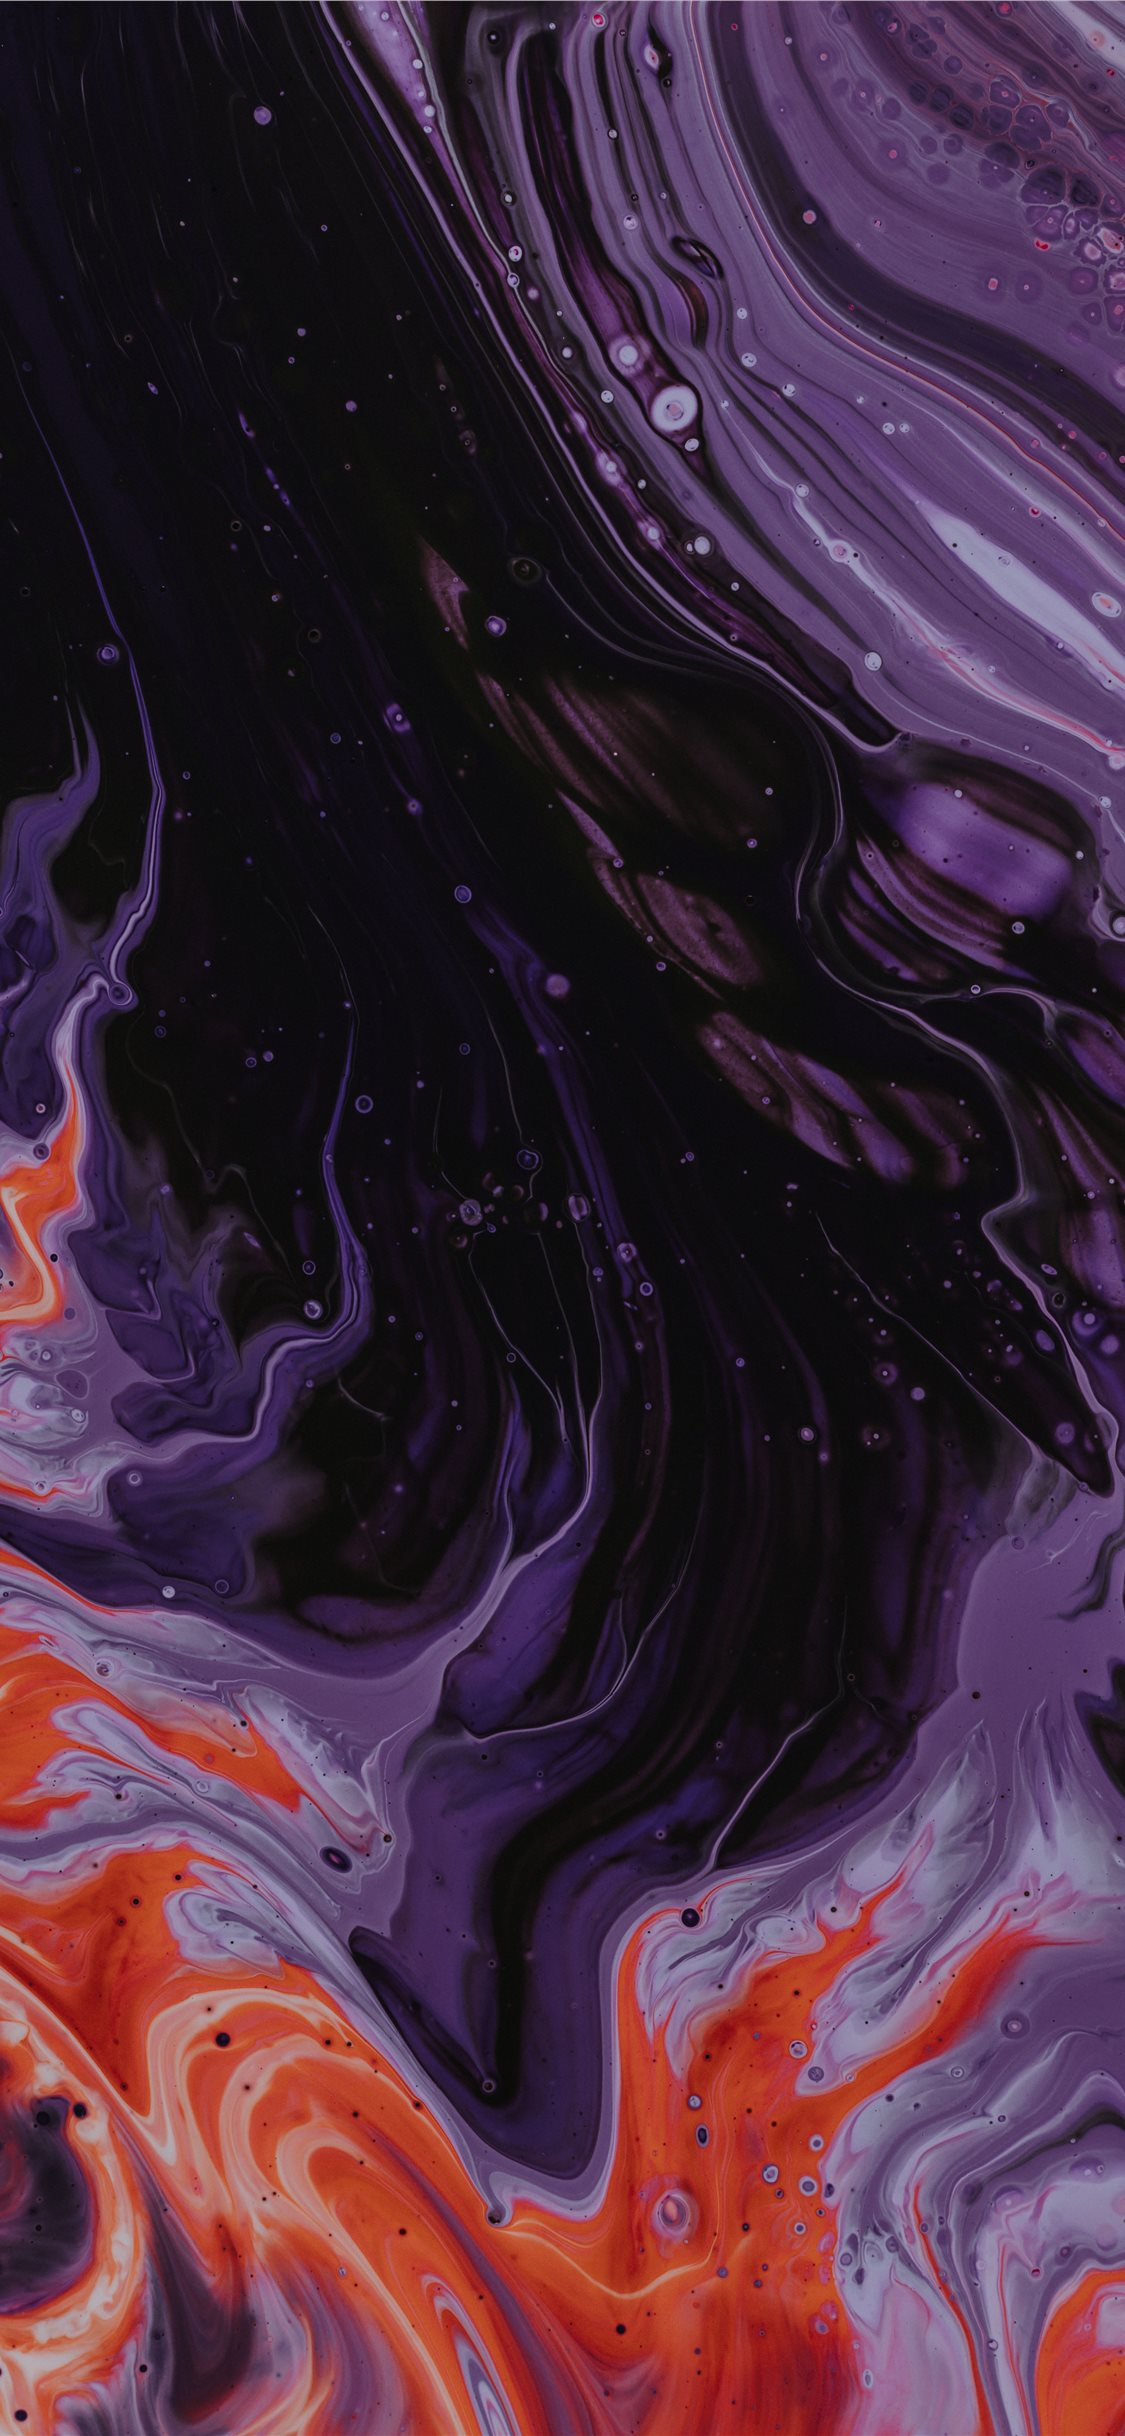 Purple Black And Orange Abstract Paintin Iphone X Wallpapers Free Download